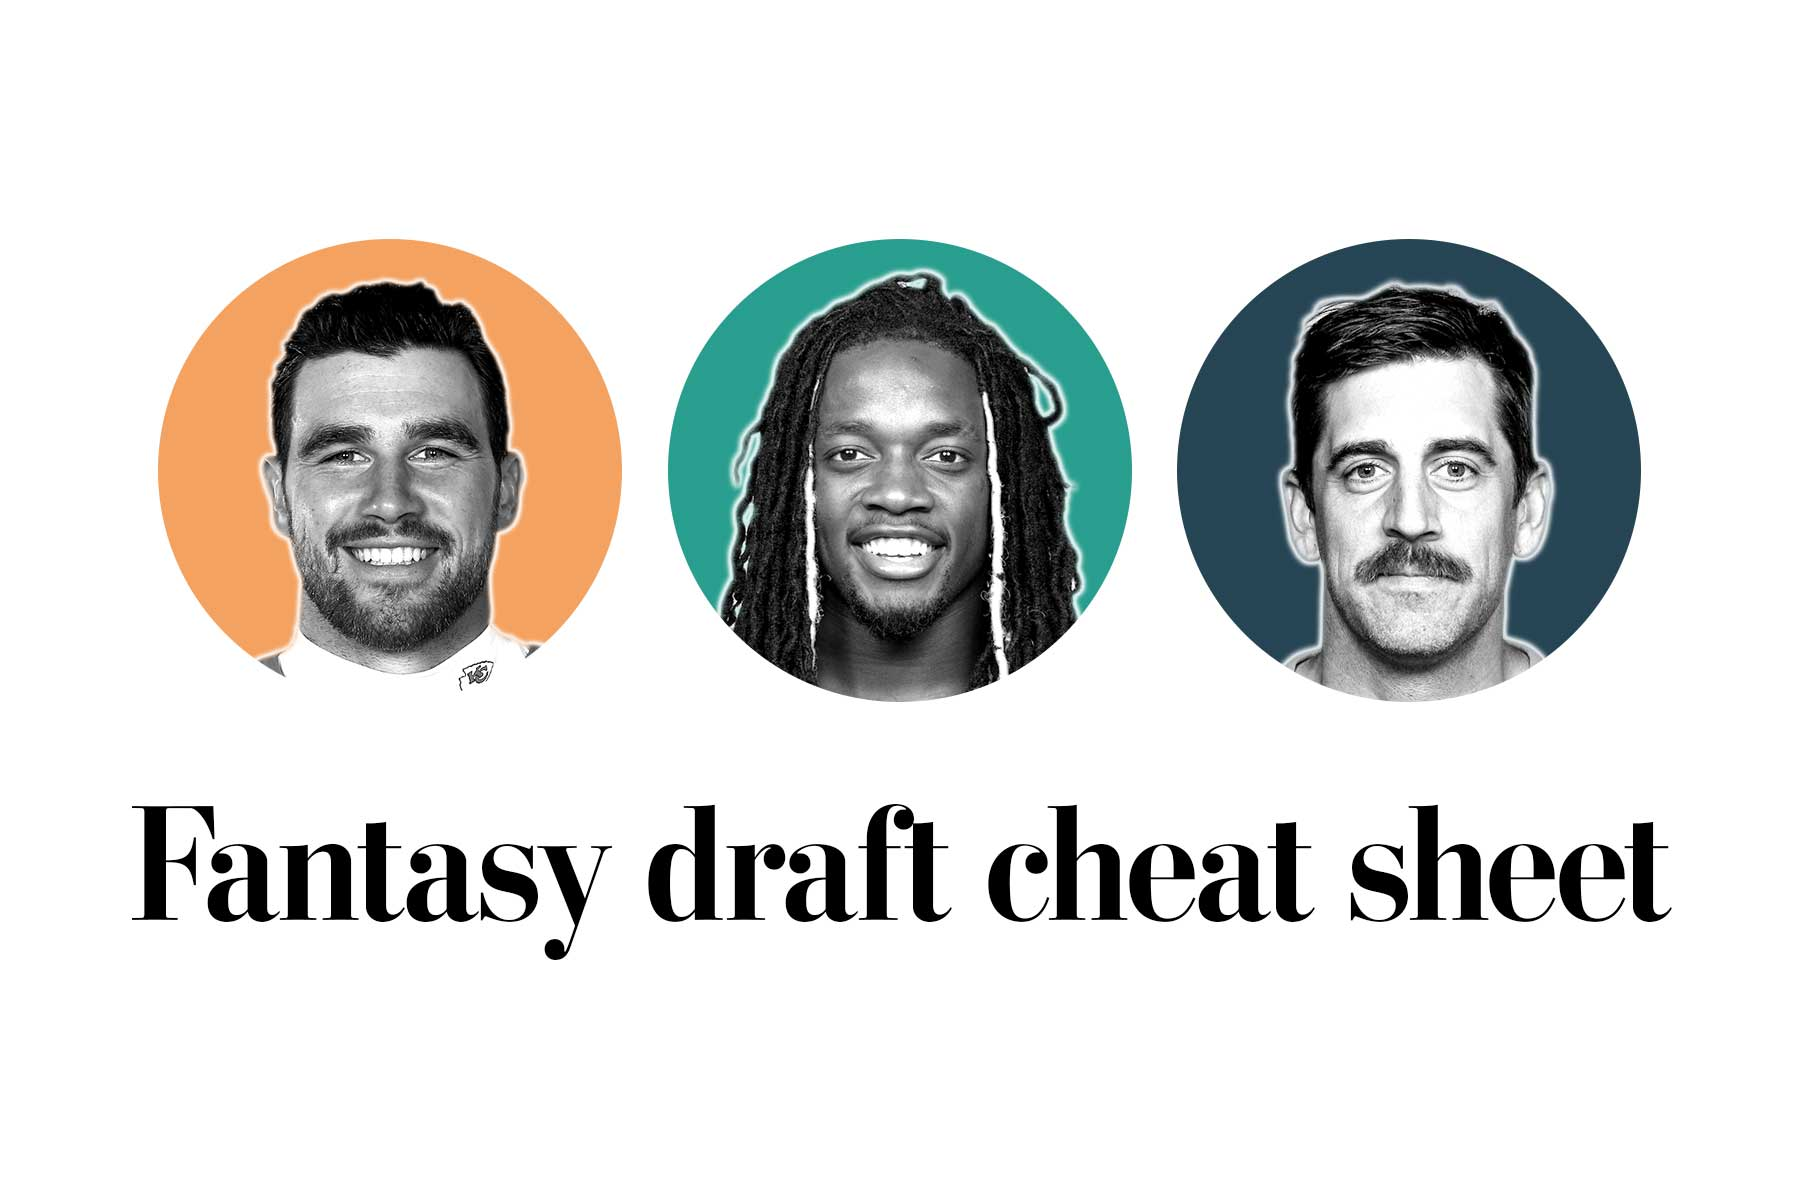 picture regarding Nfl Draft Cheat Sheet Printable titled Myth soccer 2019 draft cheat sheet - The Washington Write-up